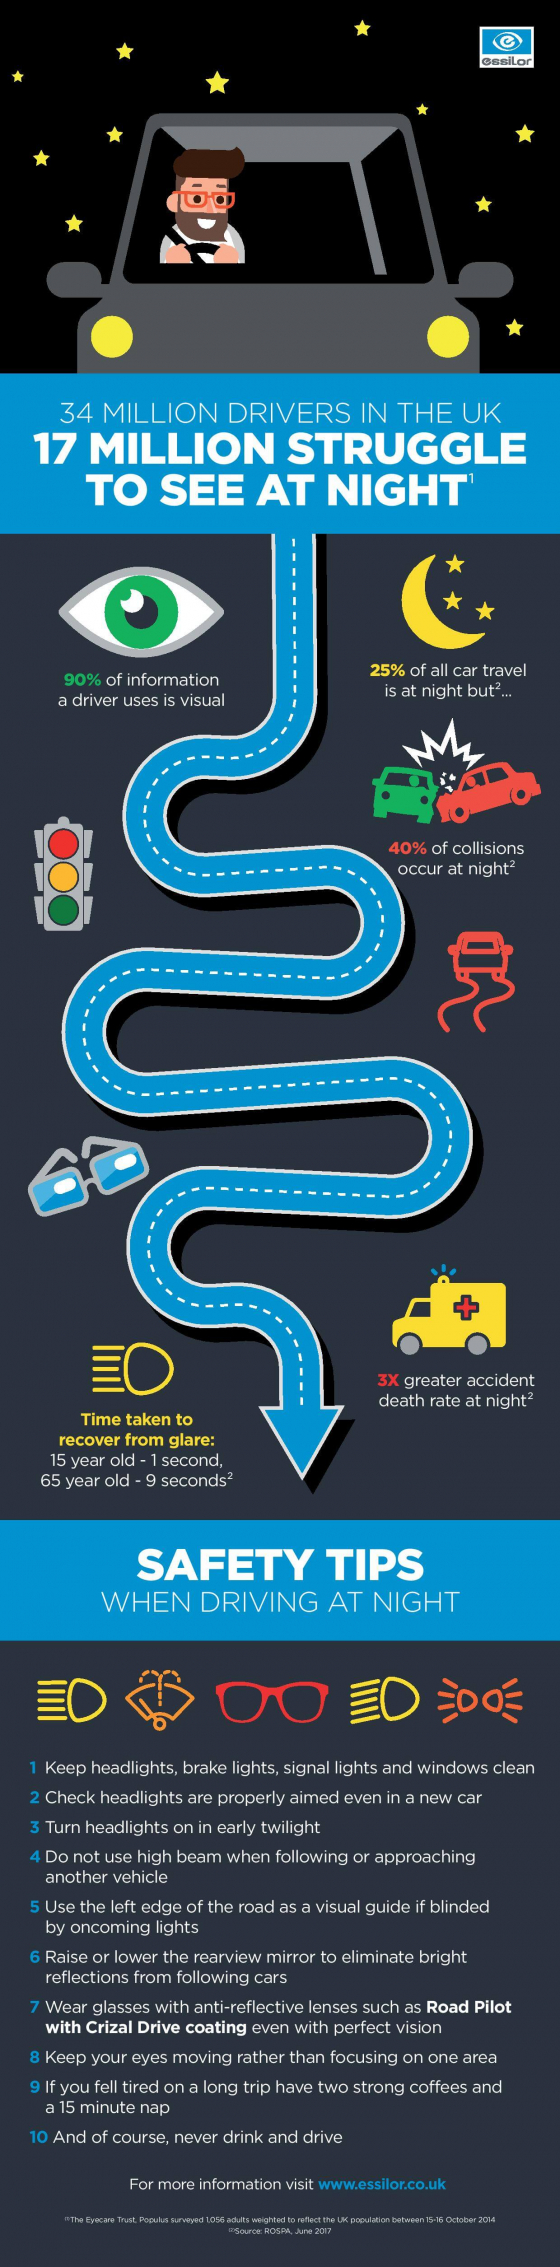 infographic on the facts about night driving through to ten safety tips which you can take.